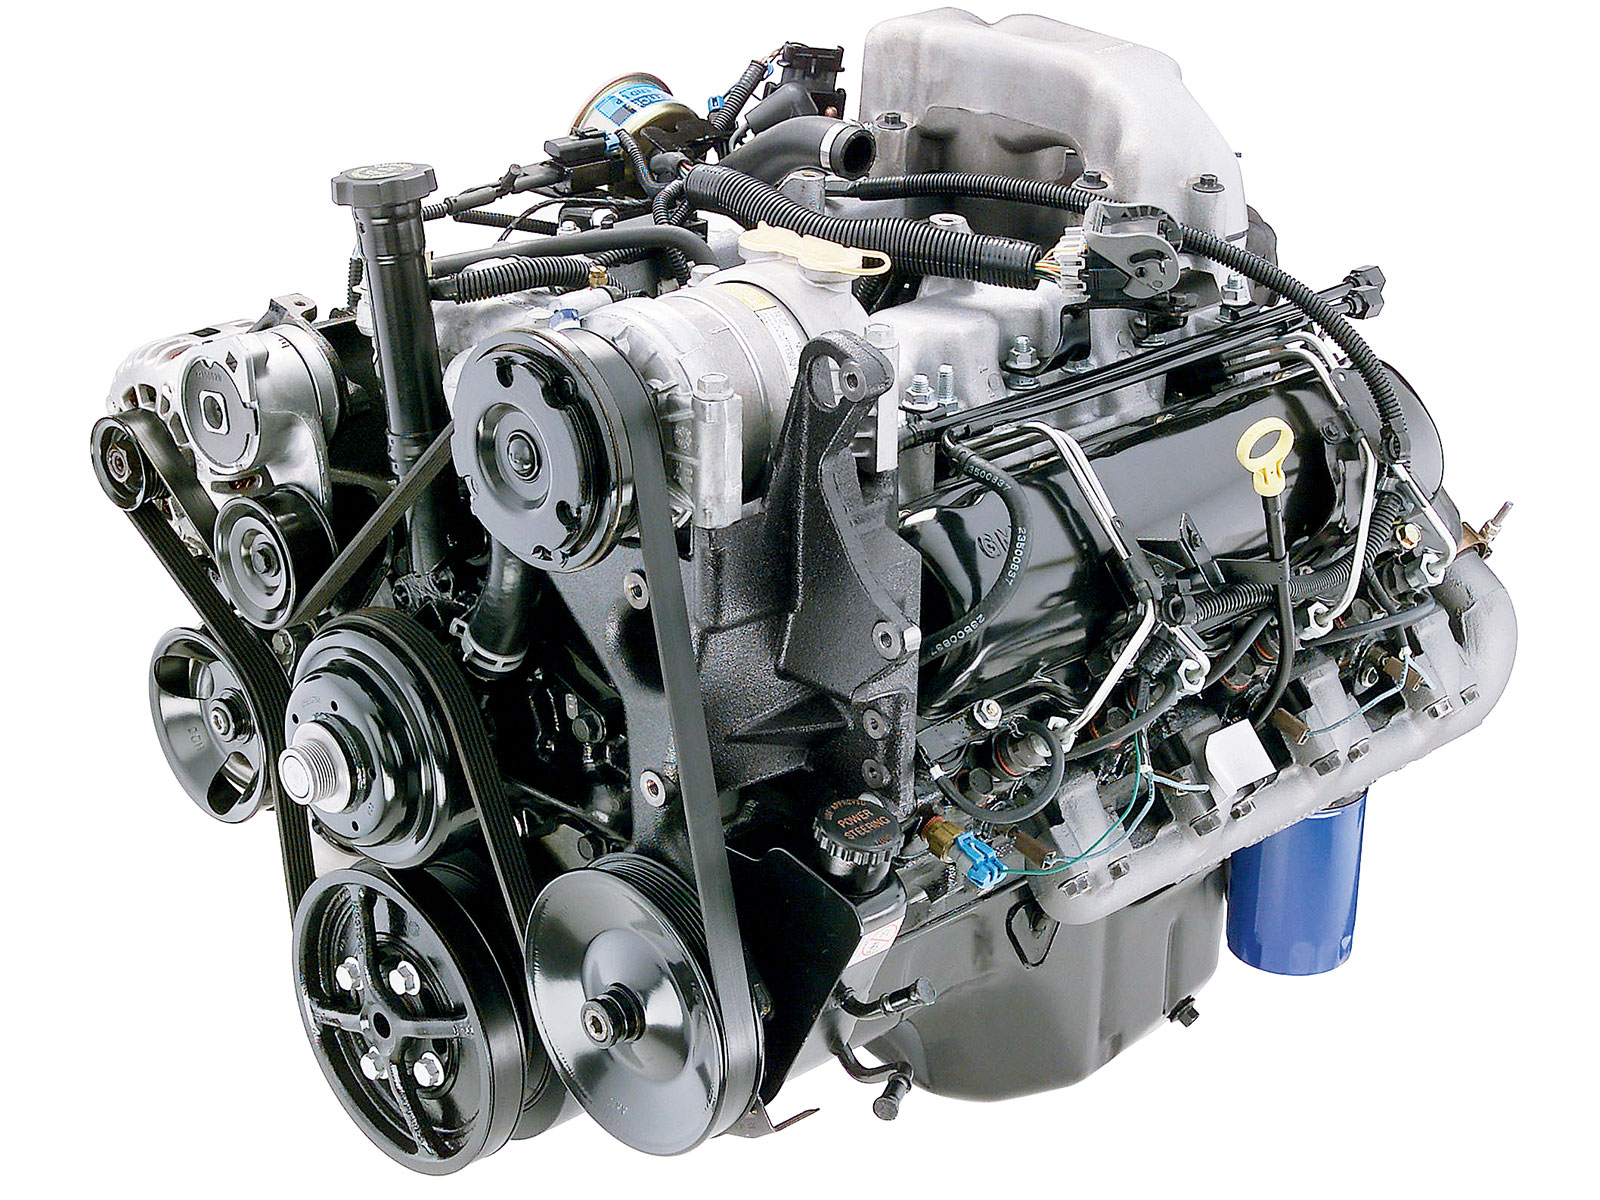 1005dp_01+diesel_power+general_motors_diesel_upgrades+GM_diesel_engine